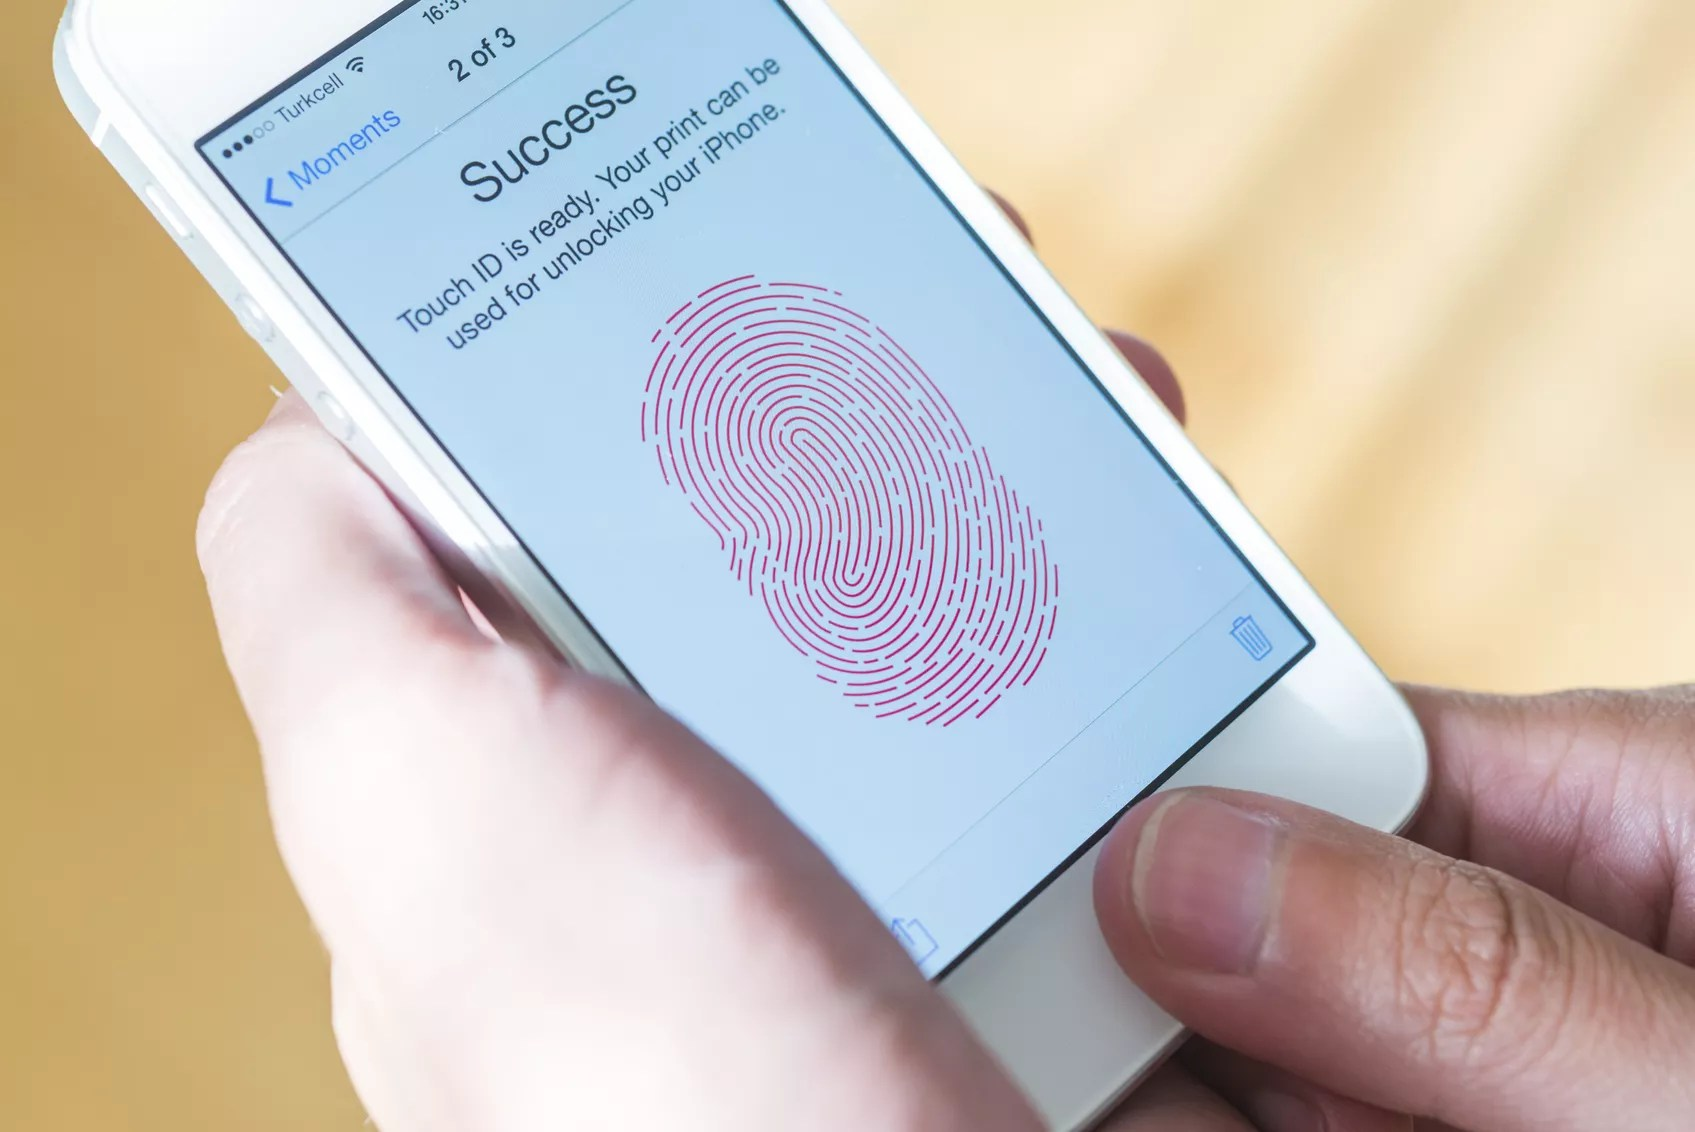 Touch ID on iPhone - The Internet Tips